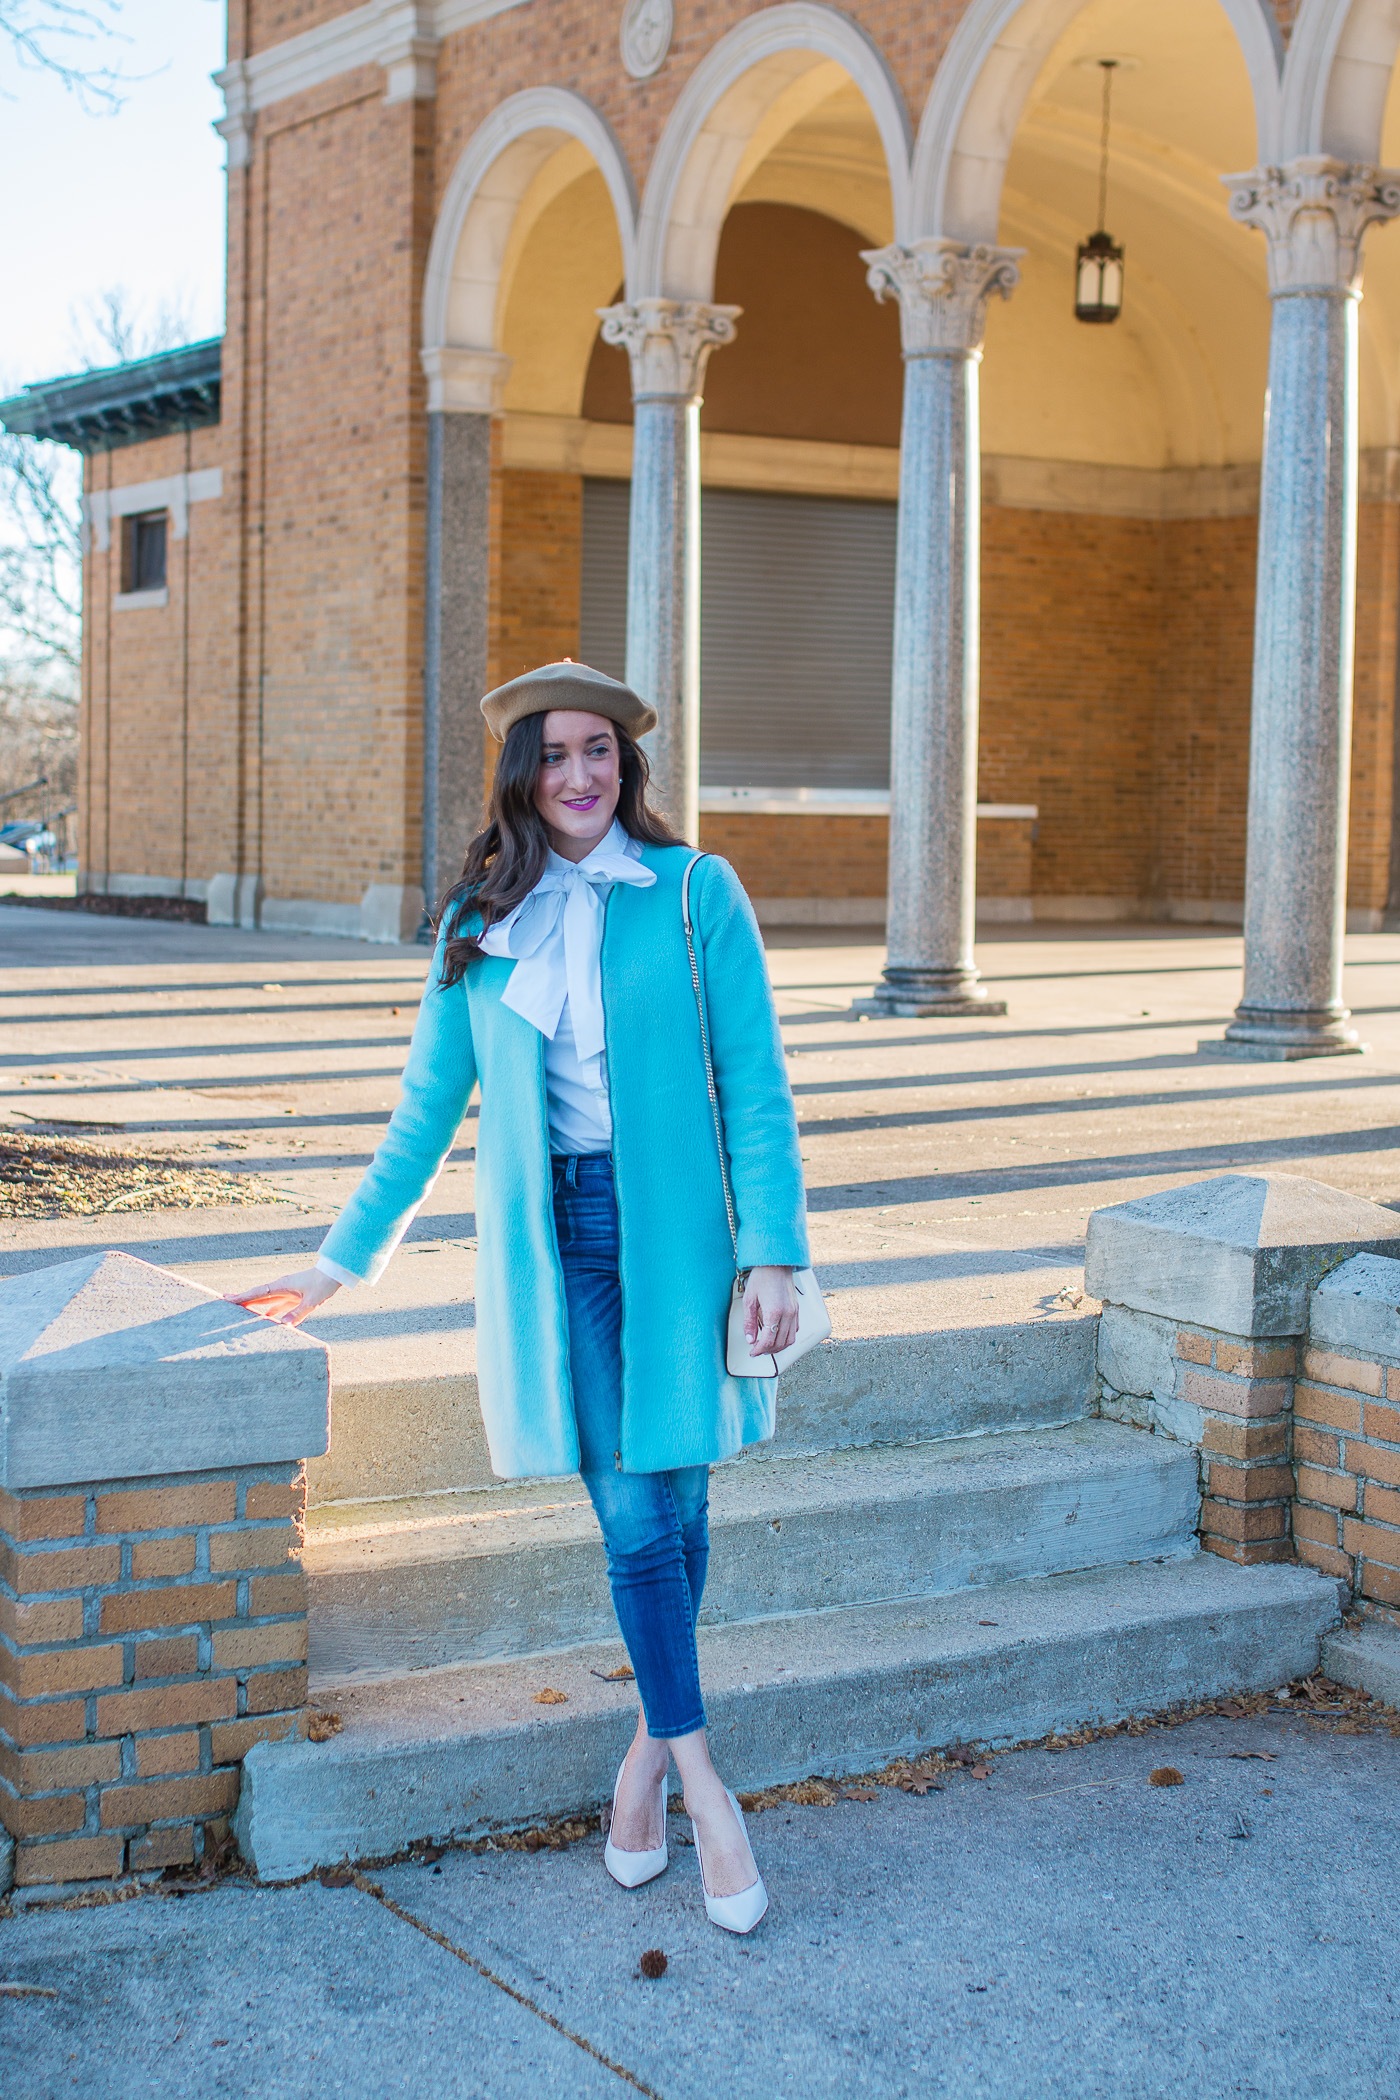 How To Wear a Baby Blue Coat